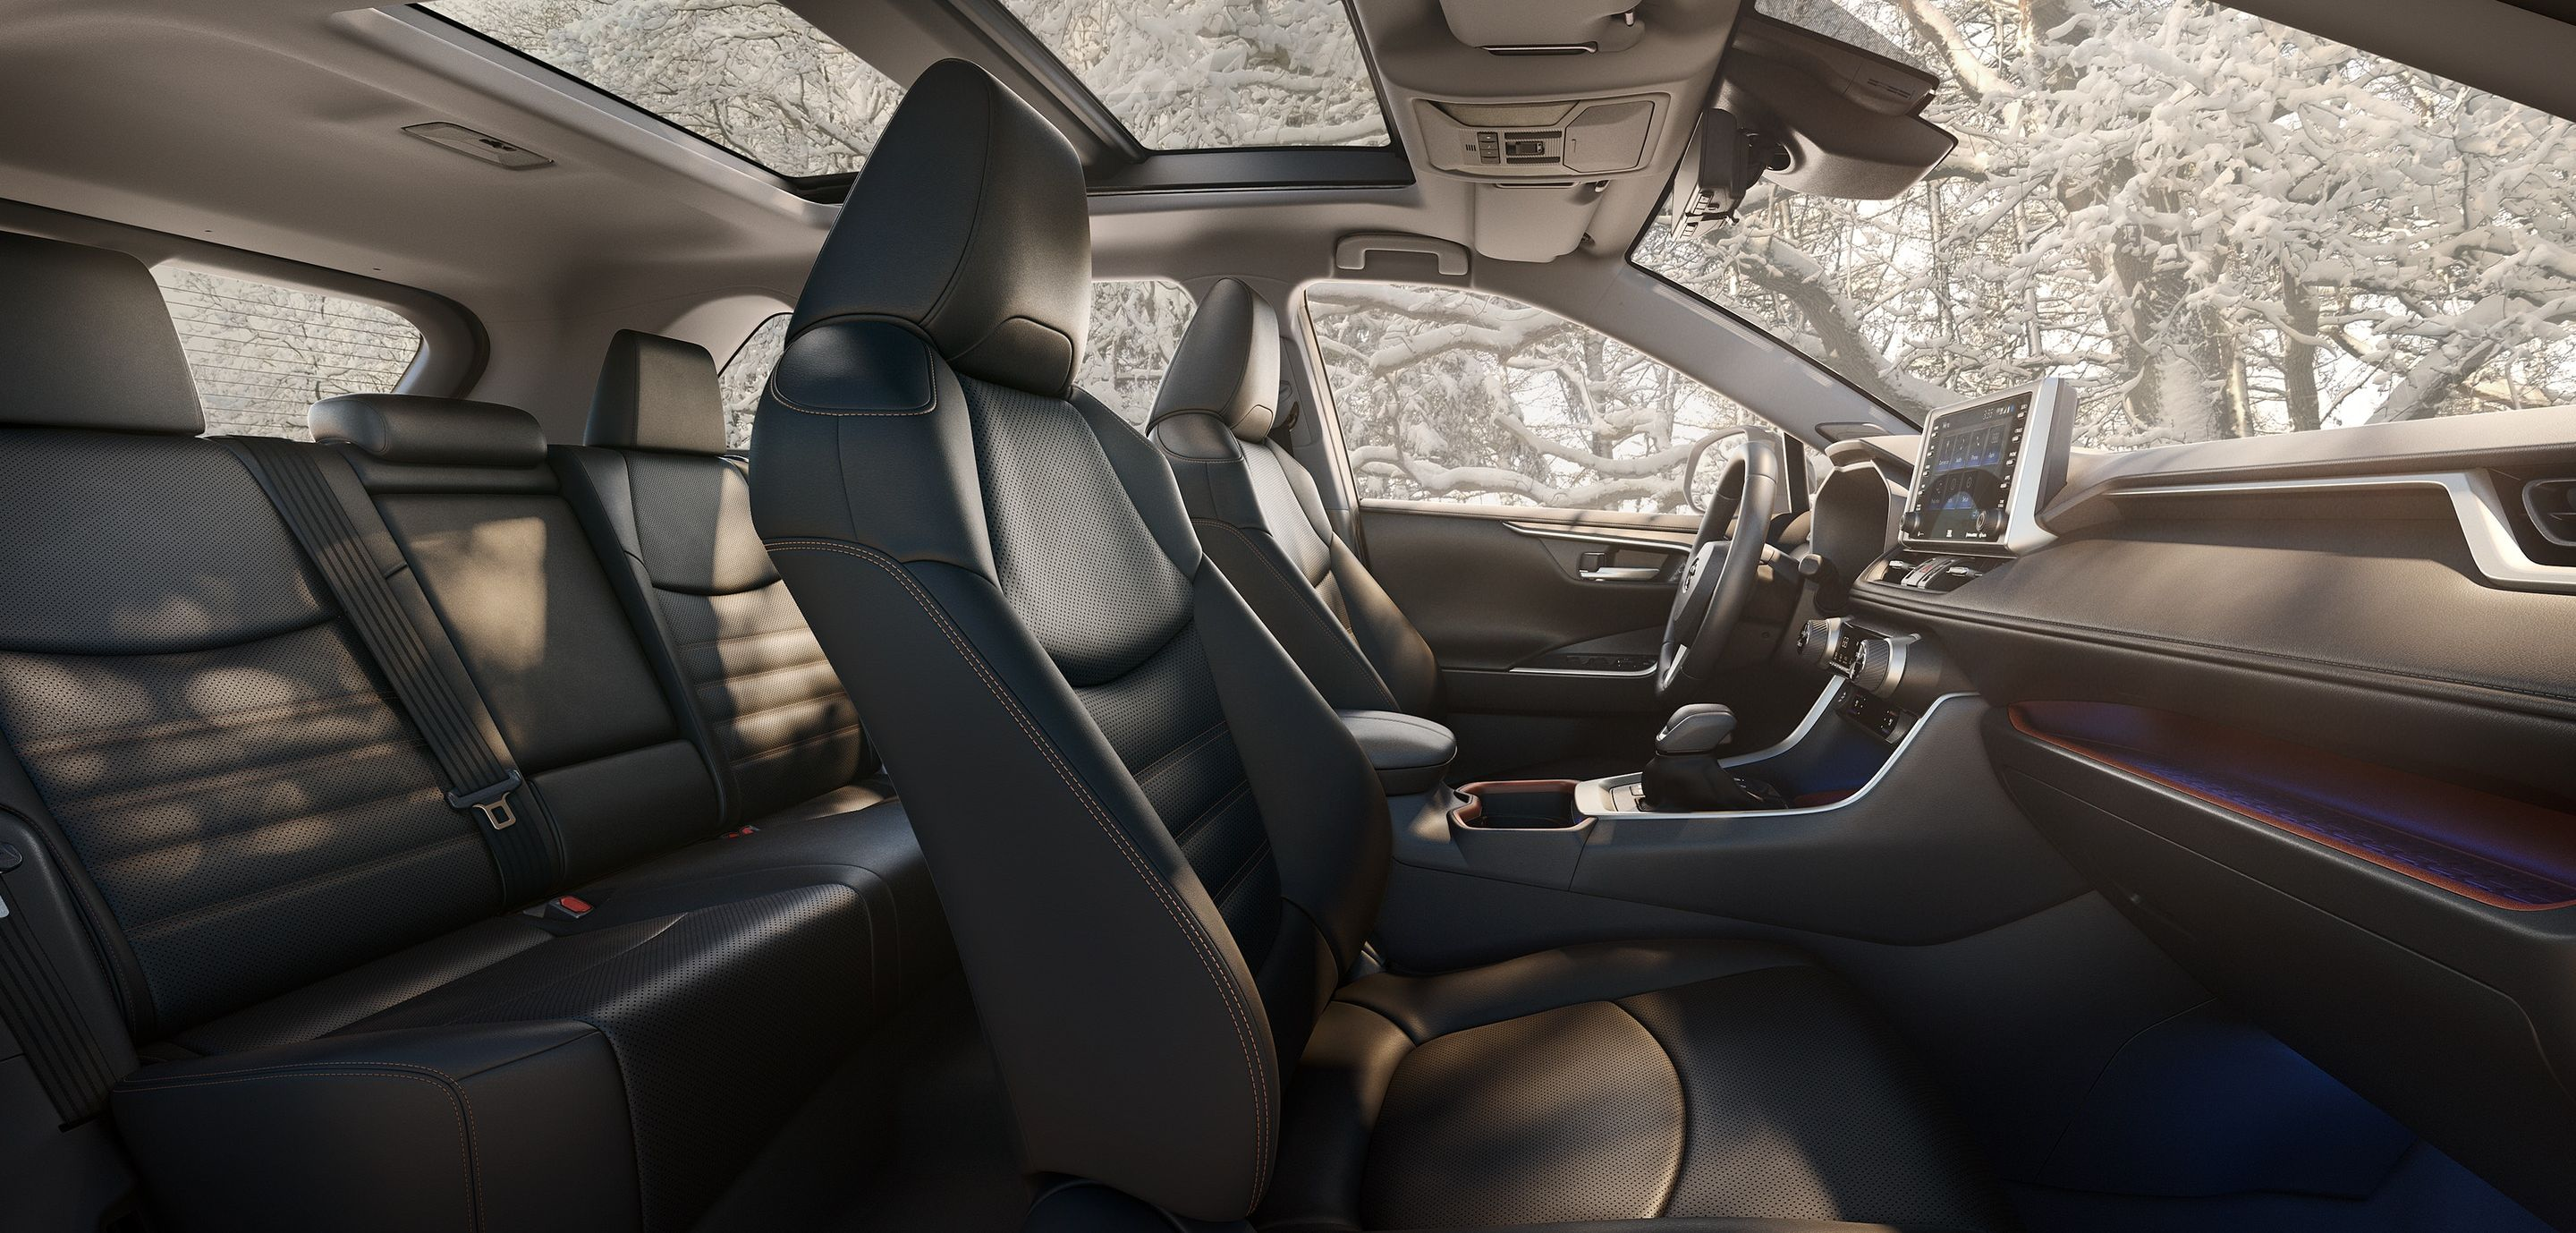 The Spacious Cabin of the RAV4